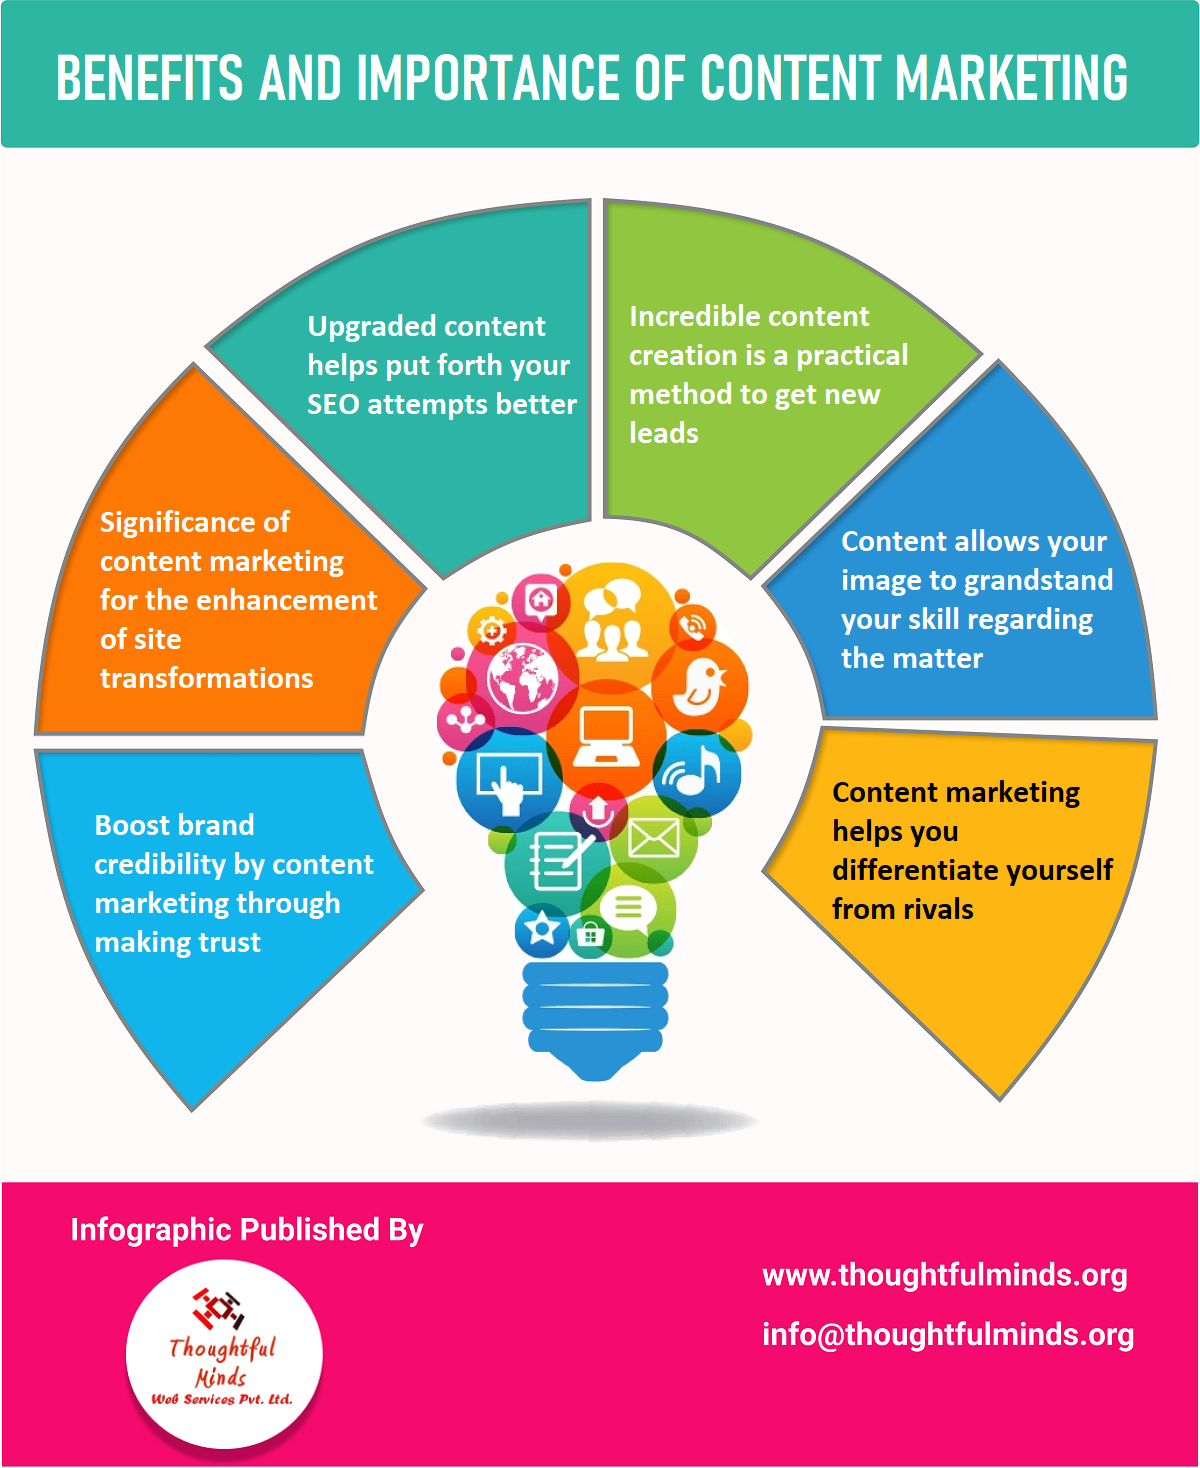 Infographic On Benefits Of Content Marketing - ThoughtfulMinds